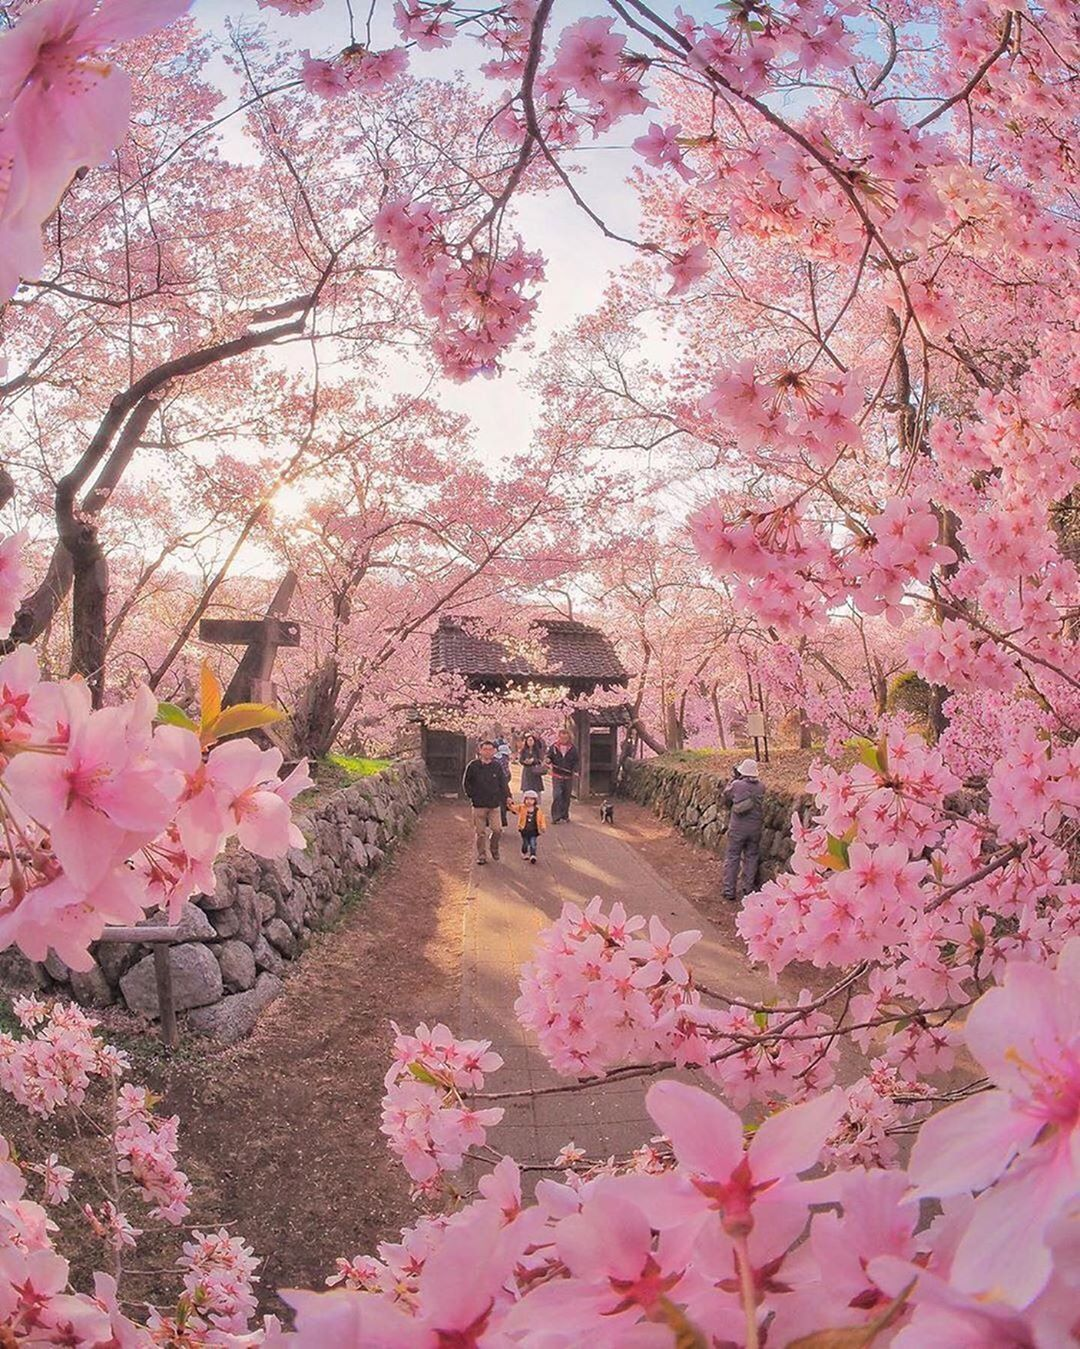 Nature On Instagram Throwback To Blossom Season In Japan Is This On Your Bucket List Photos By In 2020 World Photography Spring Photography Canon Photography